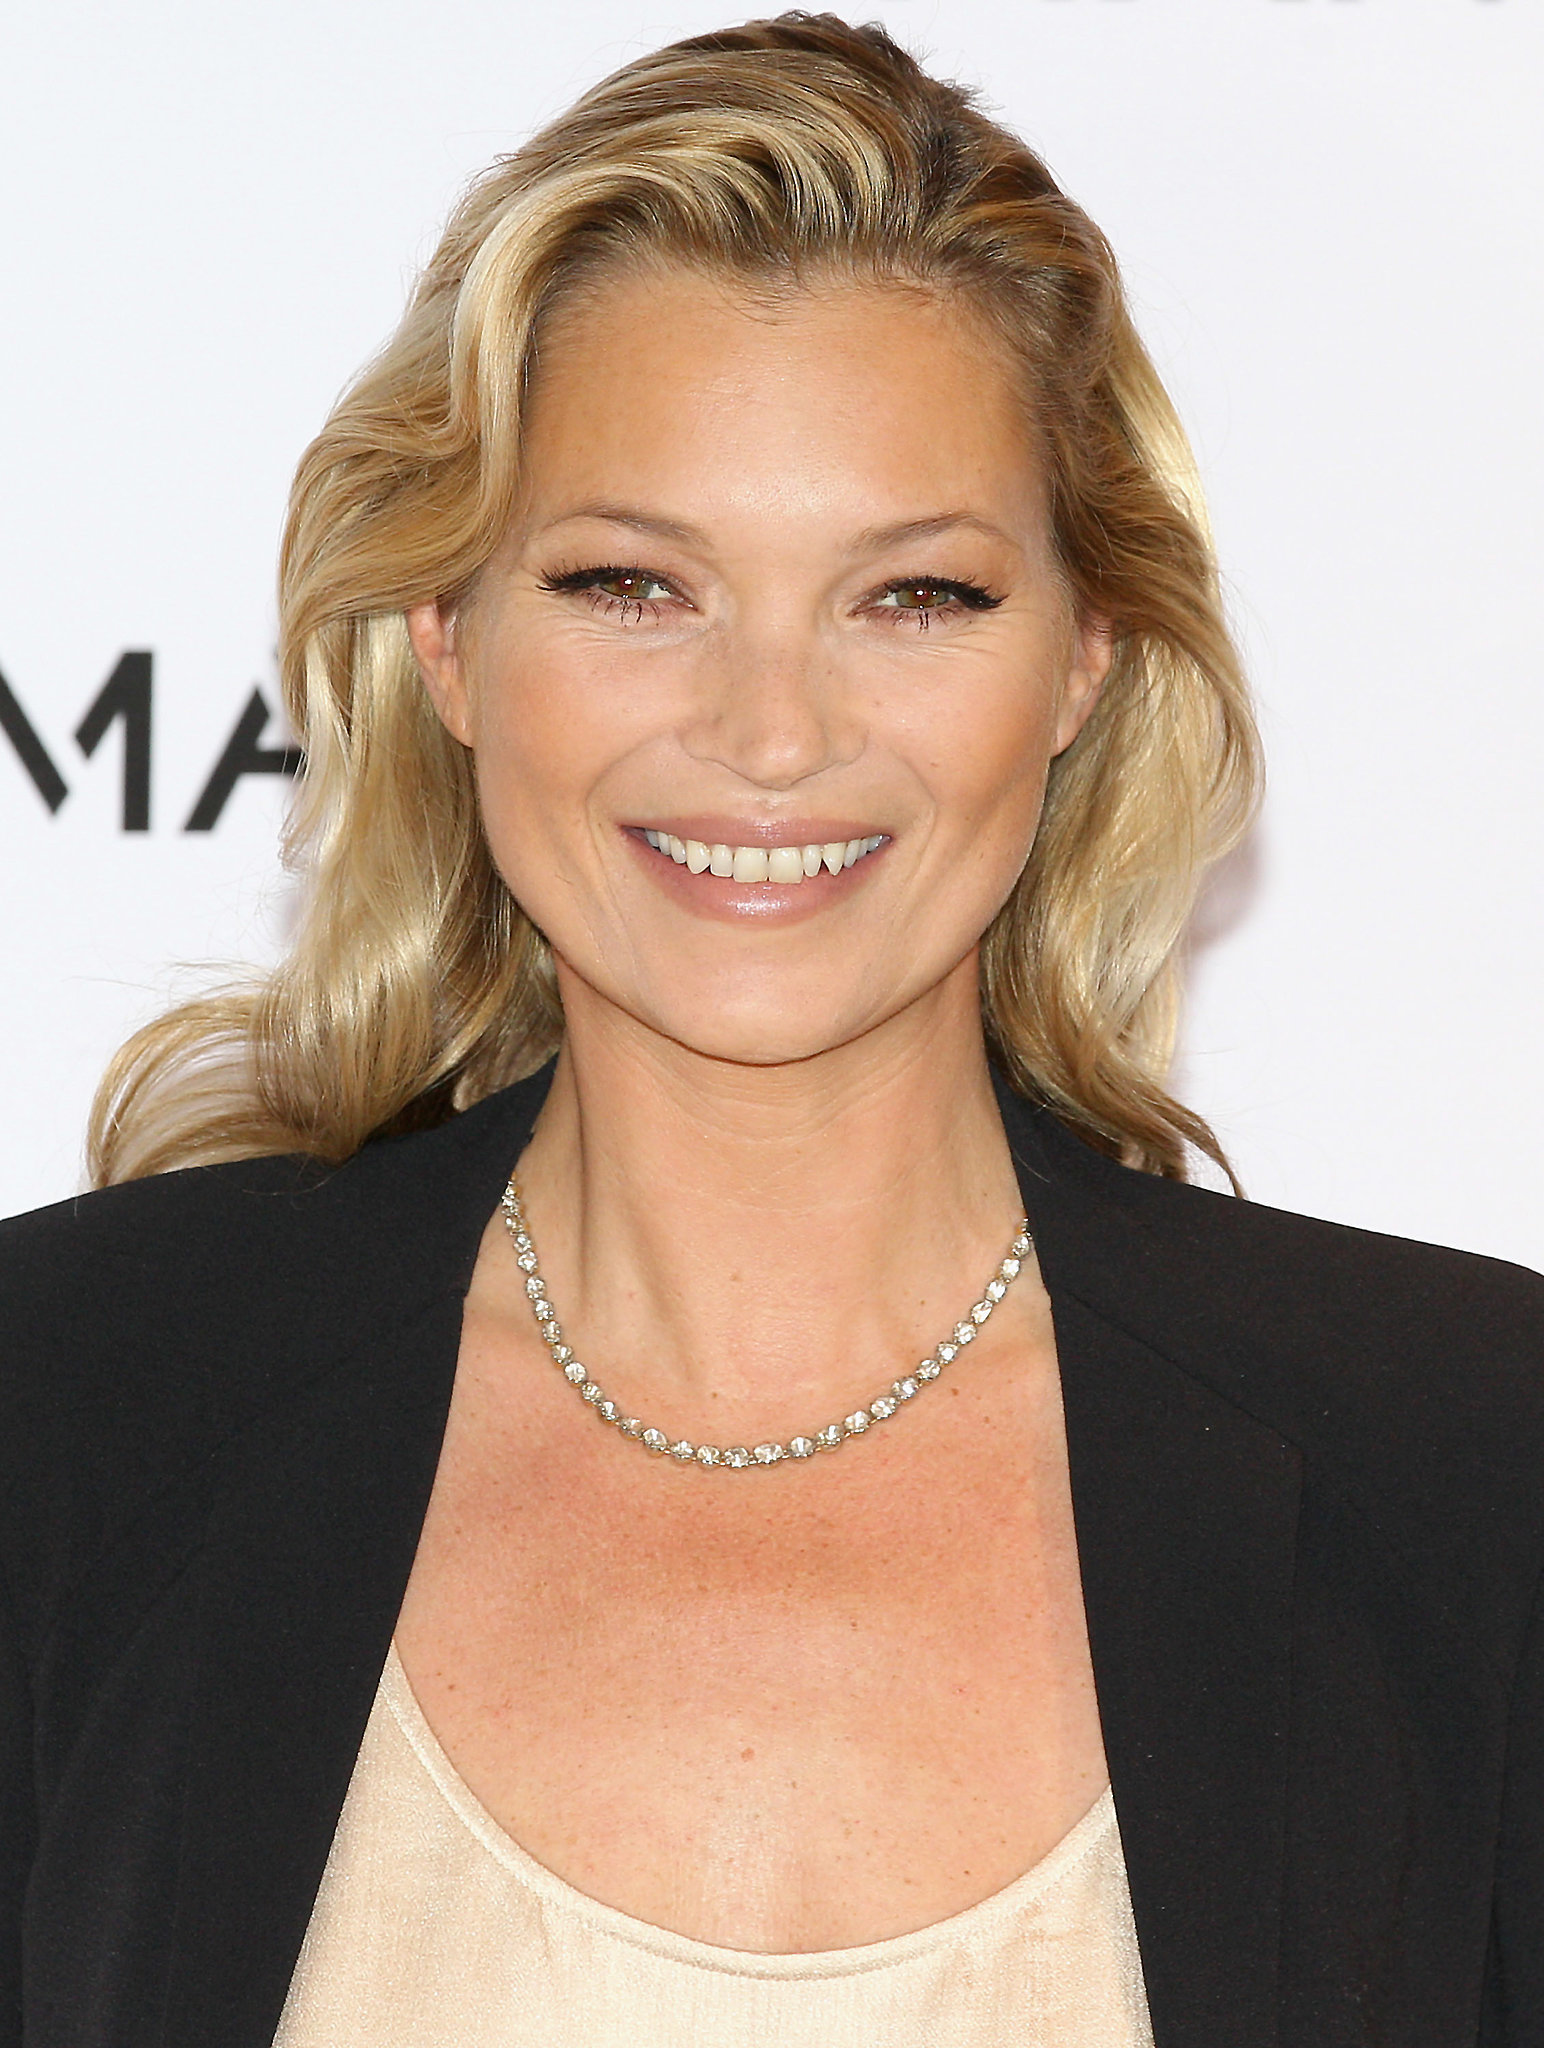 Kate Moss Beauty Spotlight Dimples Freckles Gap Tooth Grins And More Popsugar Beauty